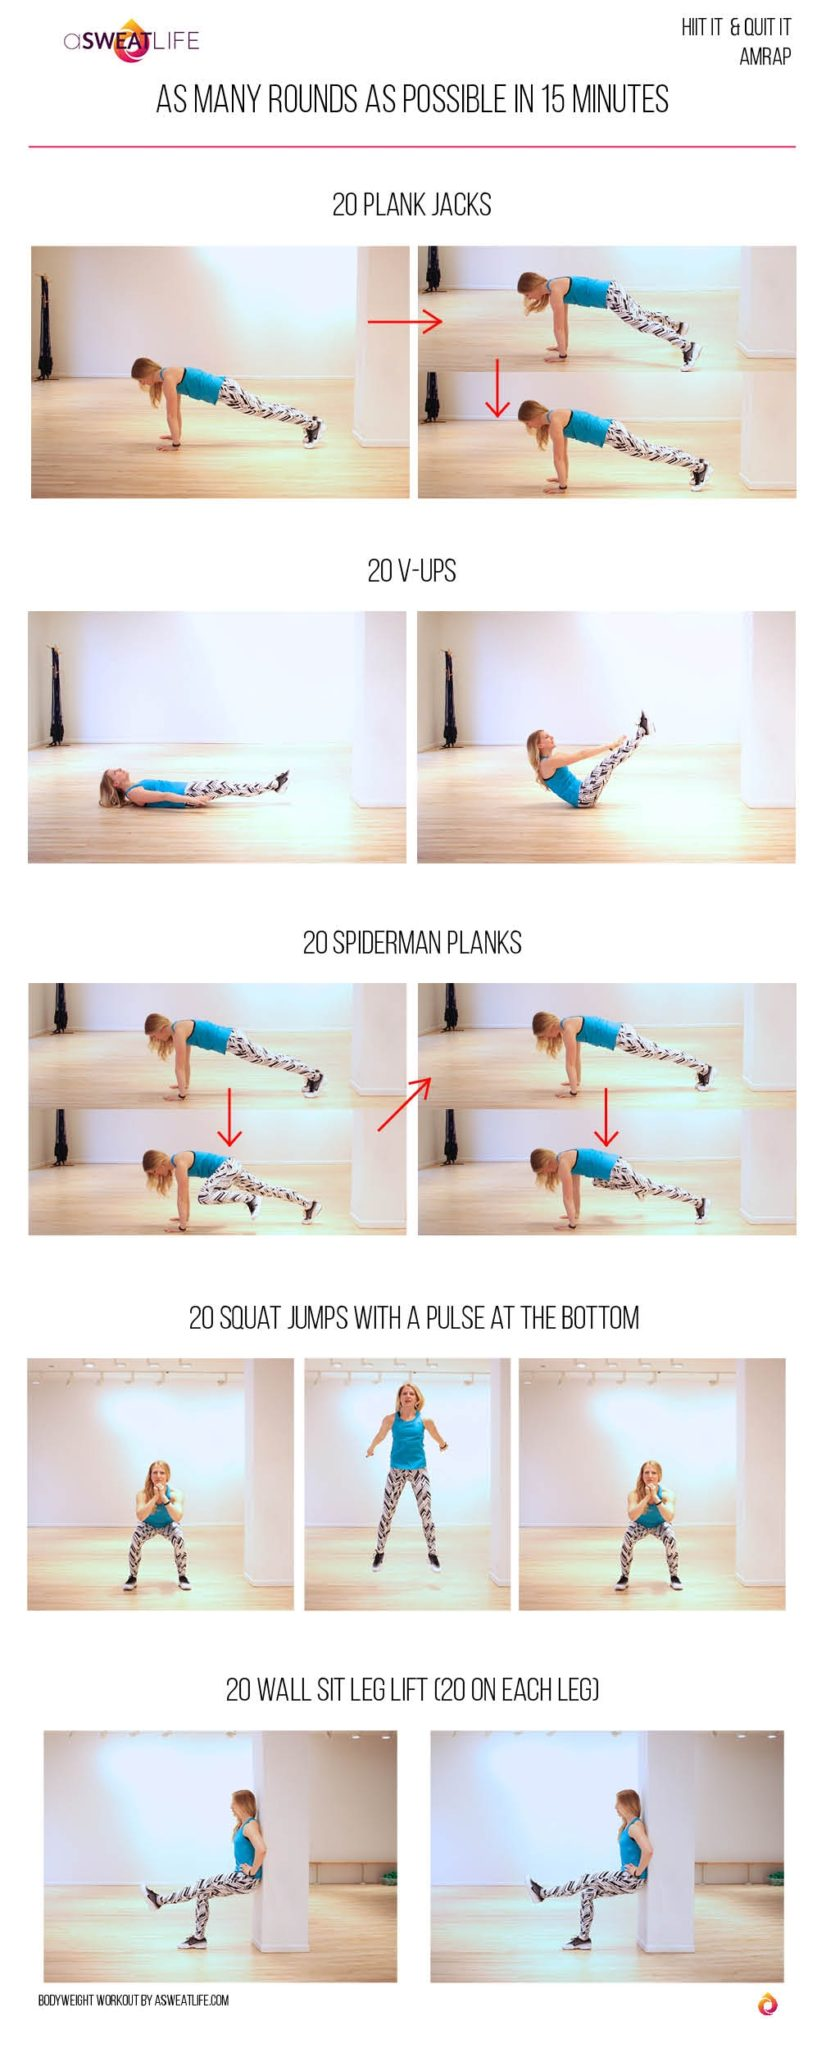 asweatlife_Your Body Weight Workout - As Many Rounds As Possible